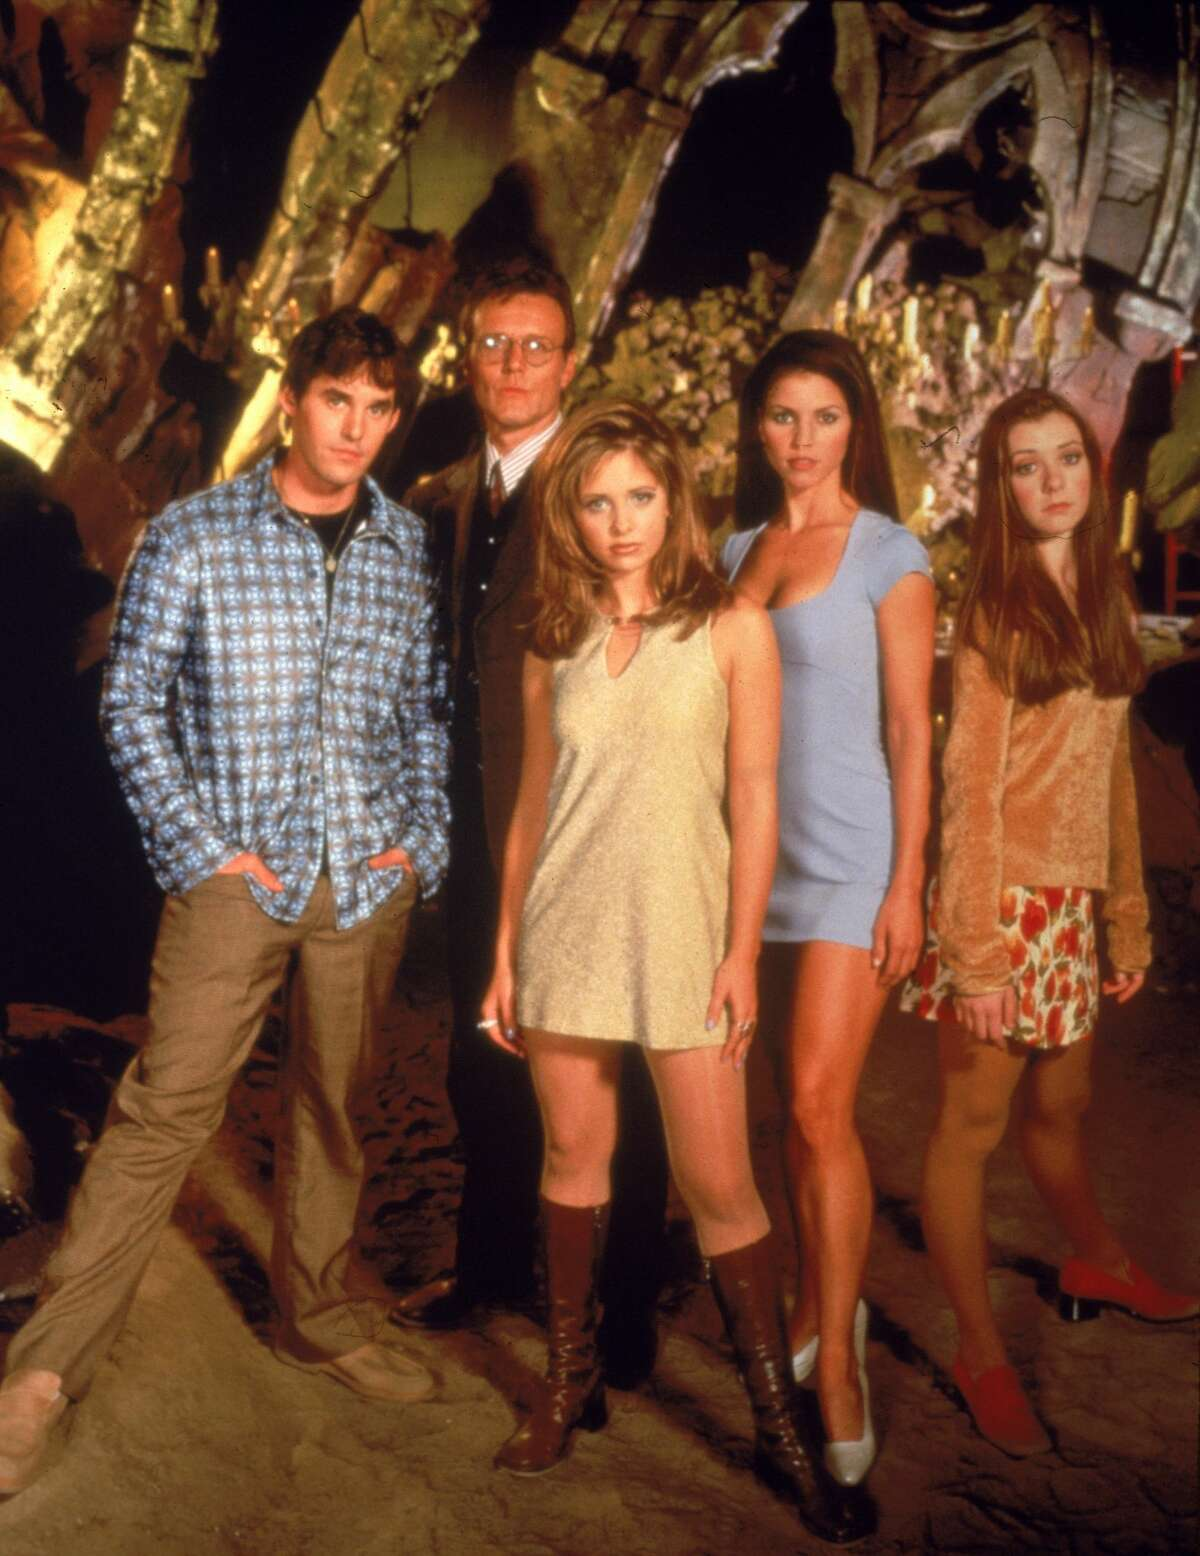 The cast grew quite a bit larger through the years, but in its early days it featured (from left) Nicholas Brendon, Anthony Head, Sarah Michelle Gellar, Charisma Carpenter and Alyson Hannigan. This promotional photo was from 1997.